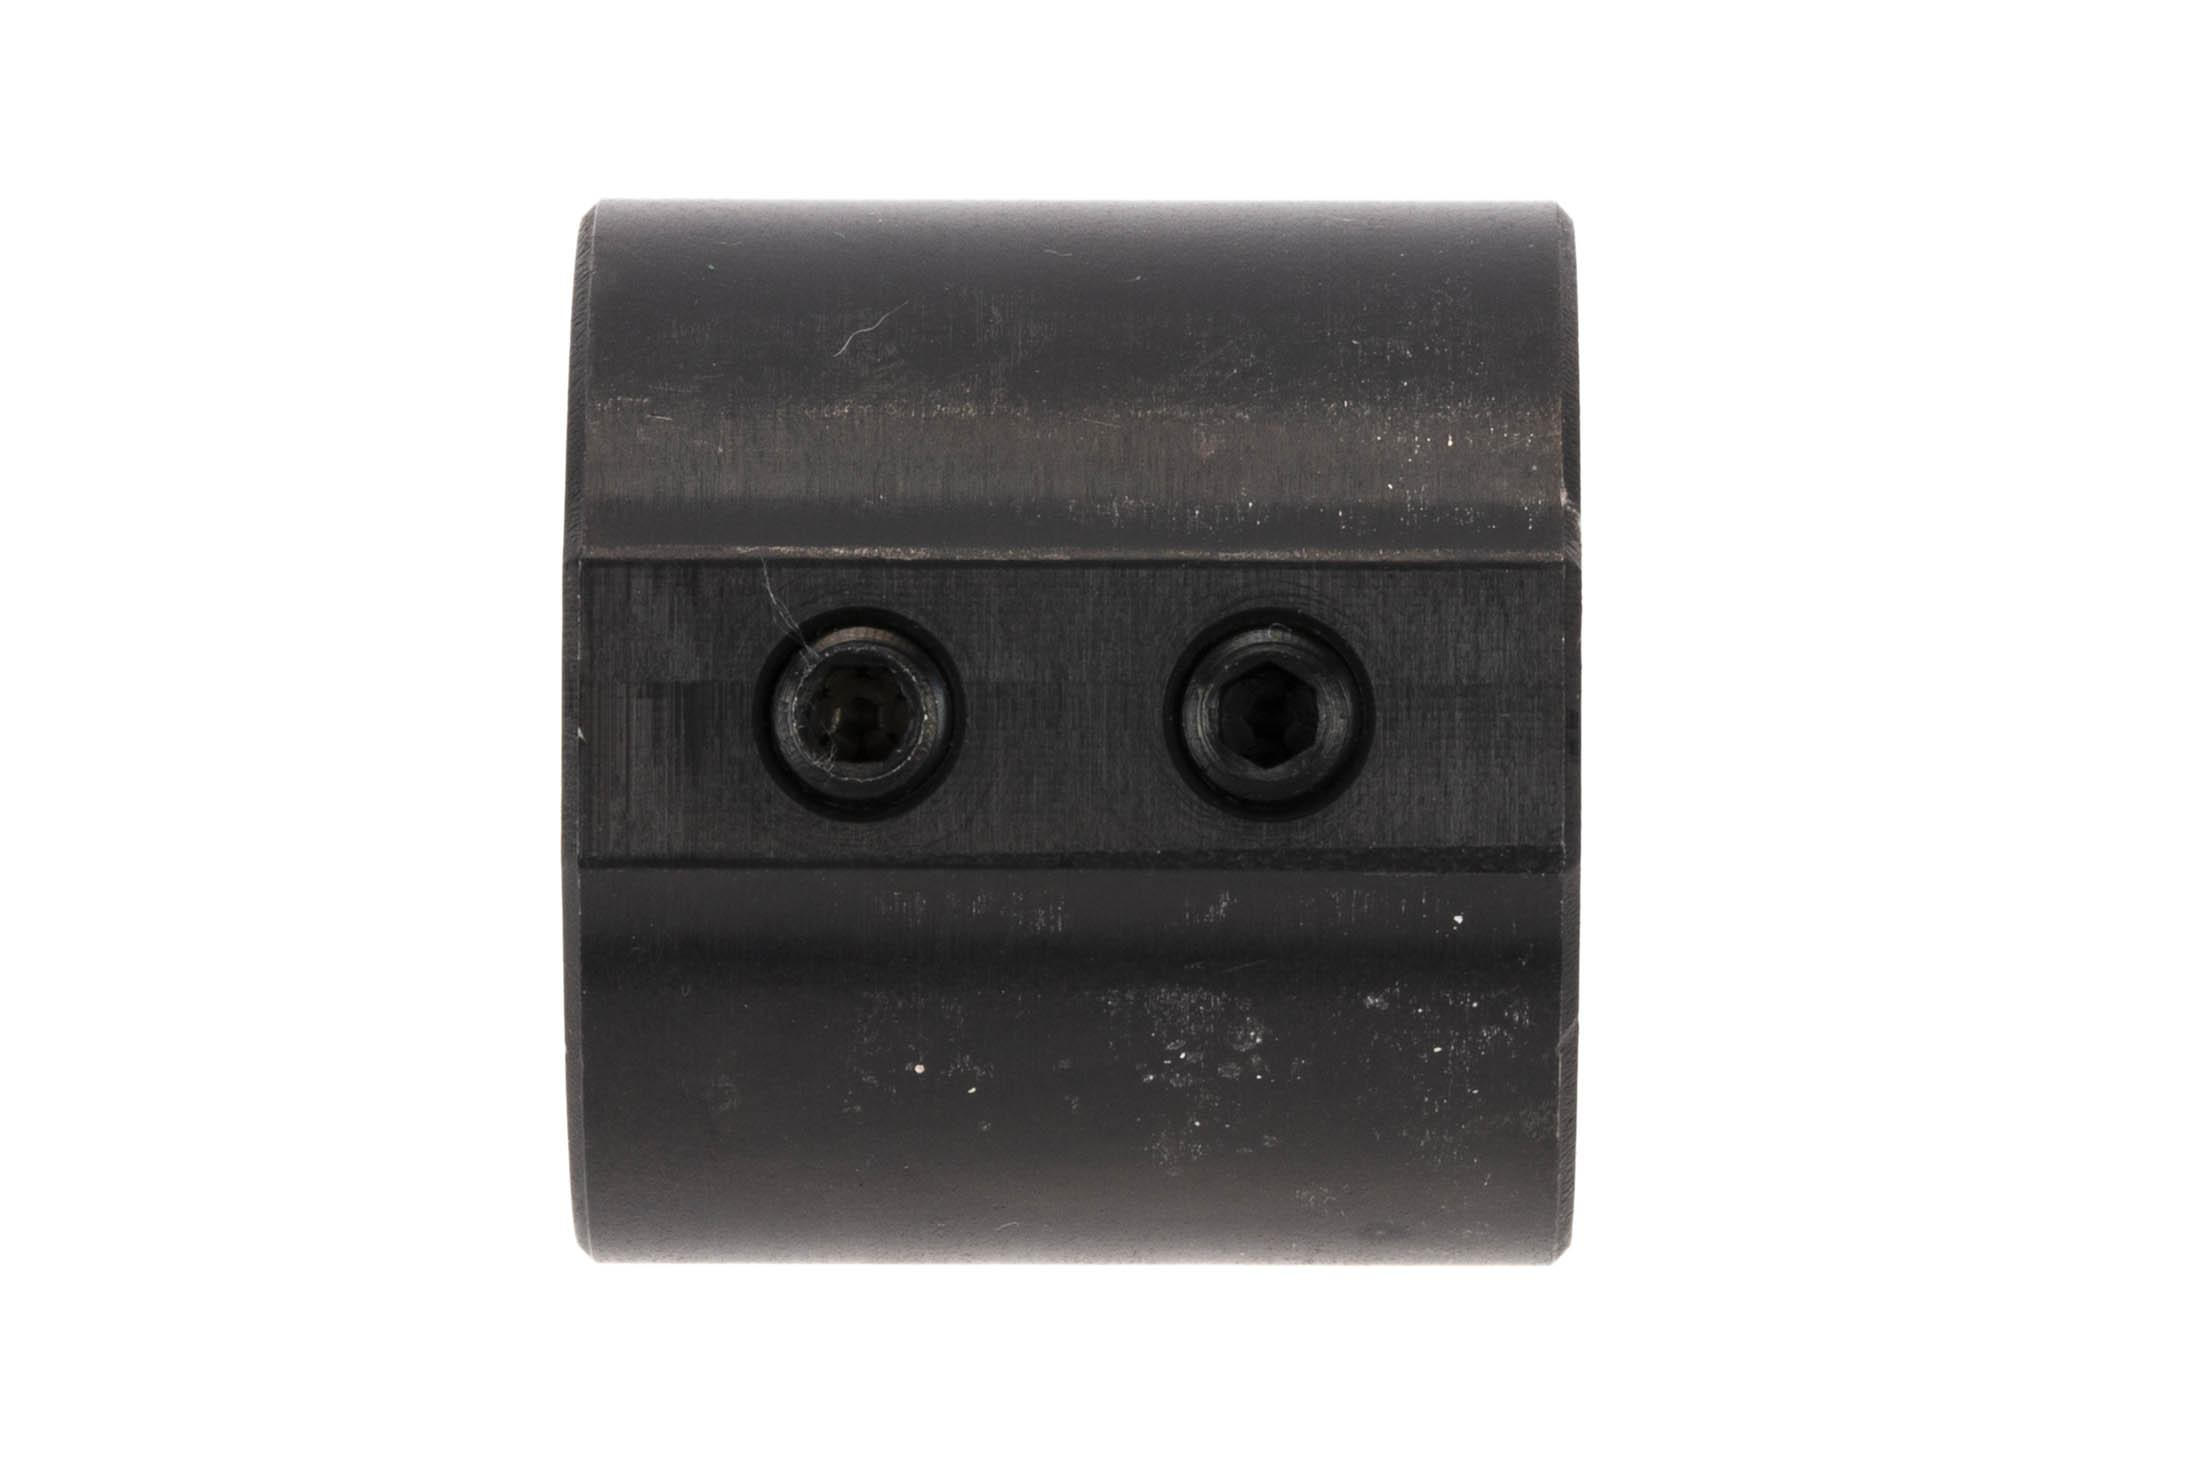 Cotton Arms adjustable .750in AR-15 gas block mounts securely with dual set screws